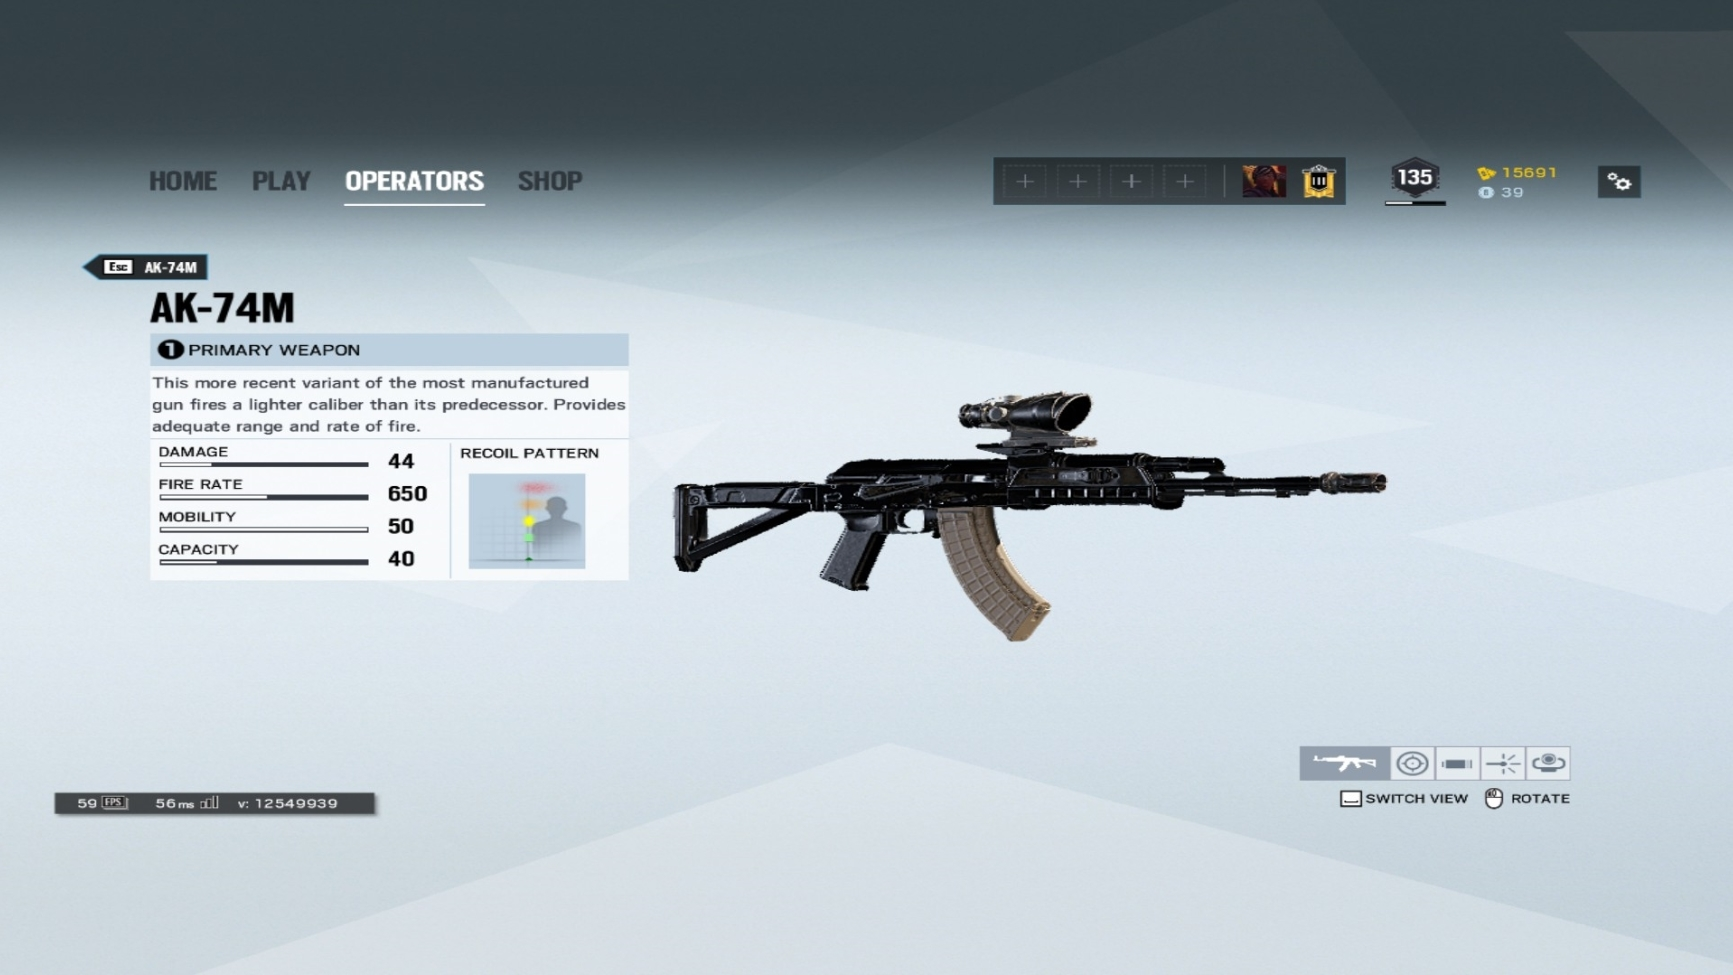 Guide] [Detailed] Nomad Guide - Rainbow 6 Siege - Damage Inc